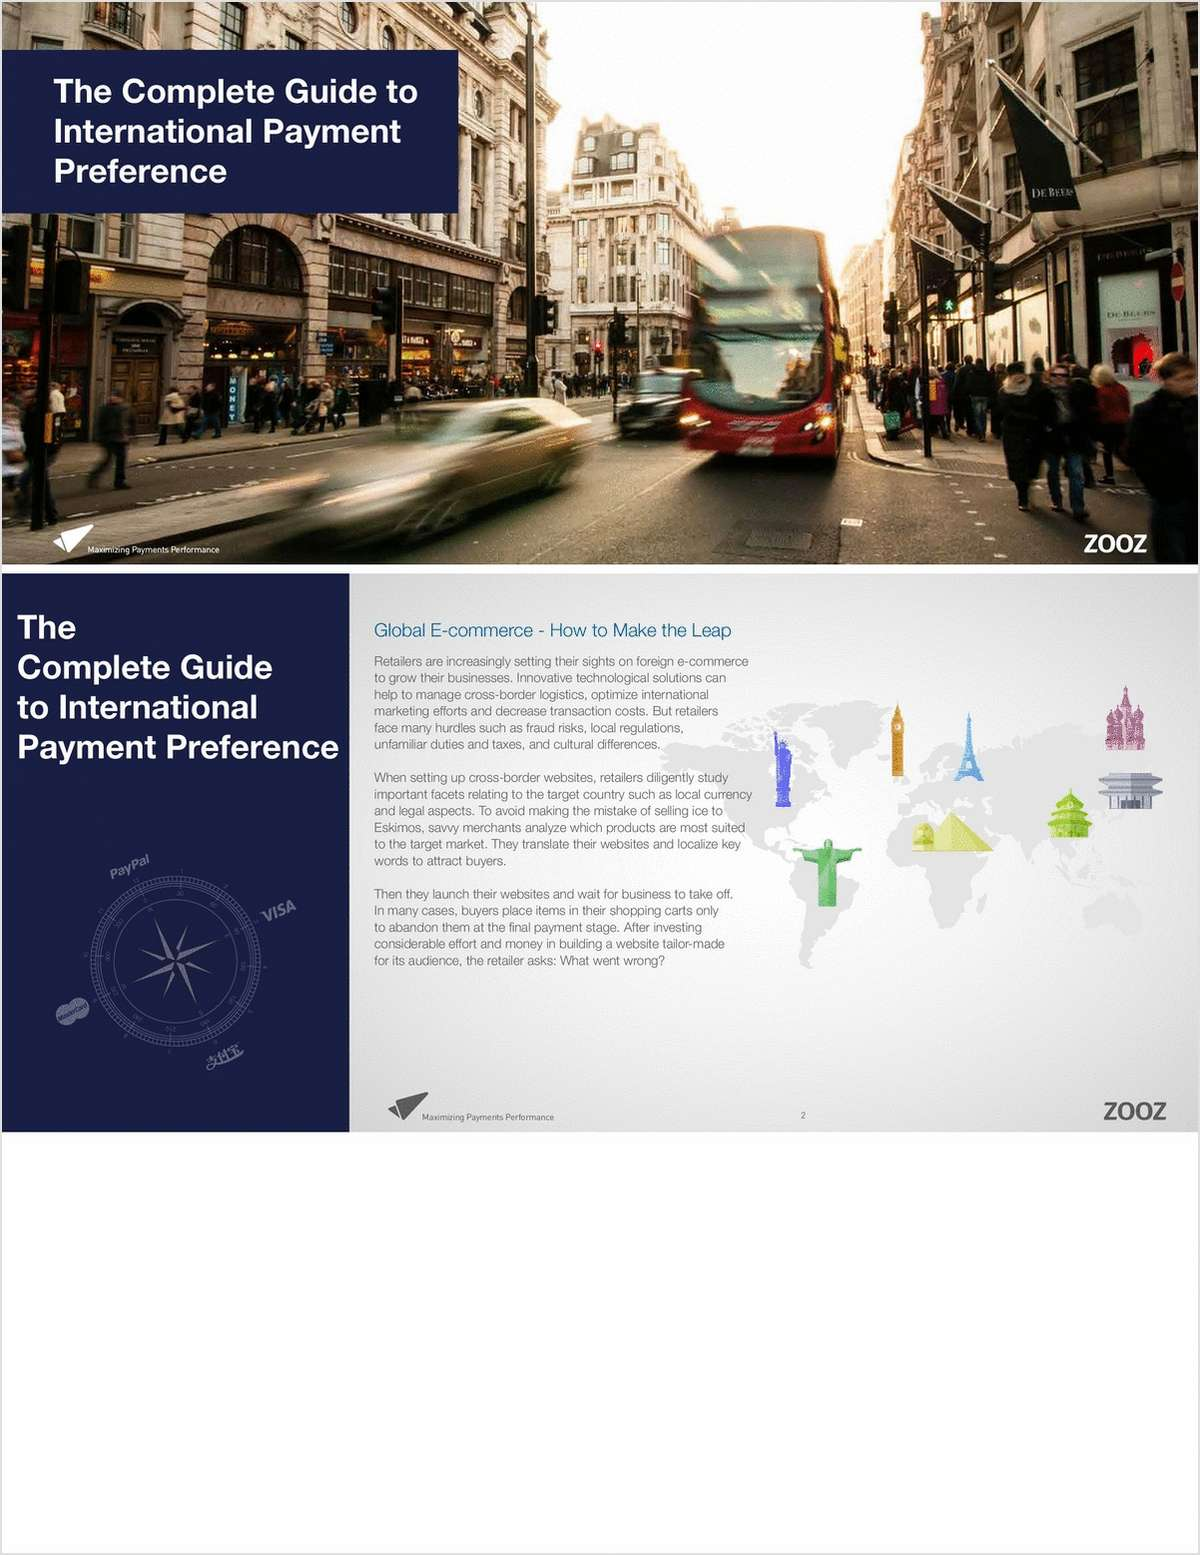 The Complete Guide to International Payment Preference